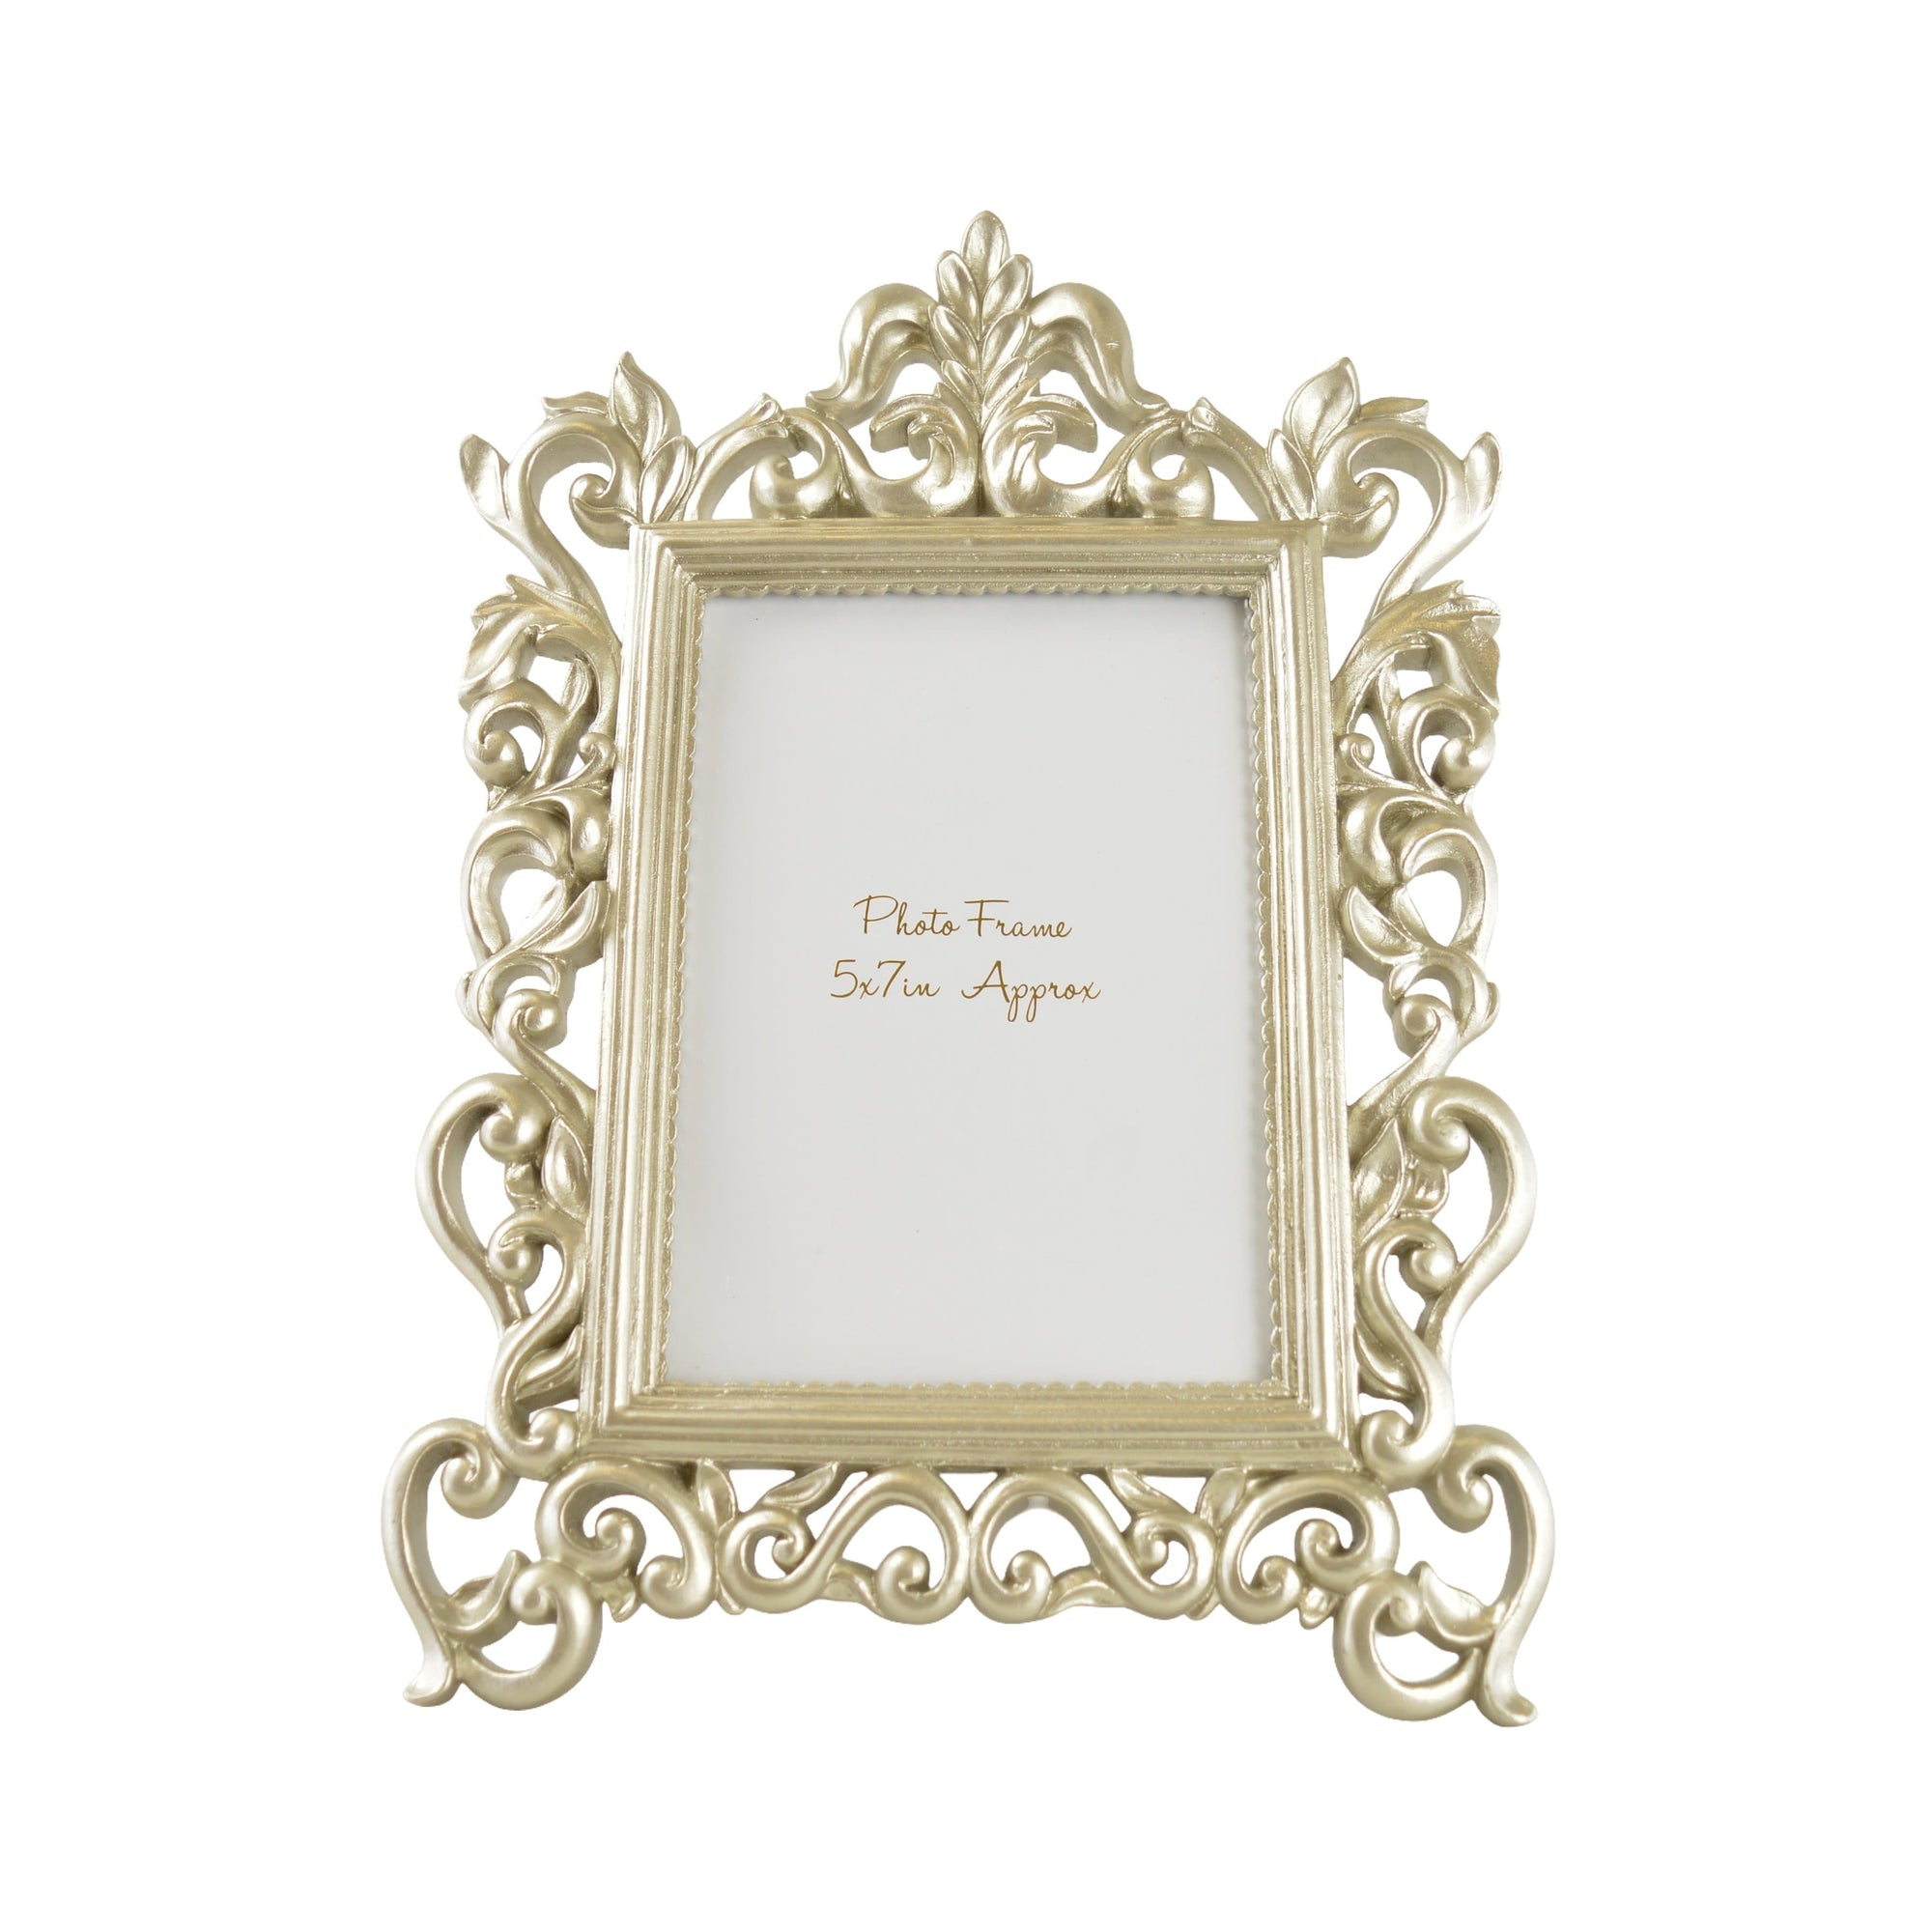 "Ornate Large Photo frame in Champagne 5x7"" 4PK"